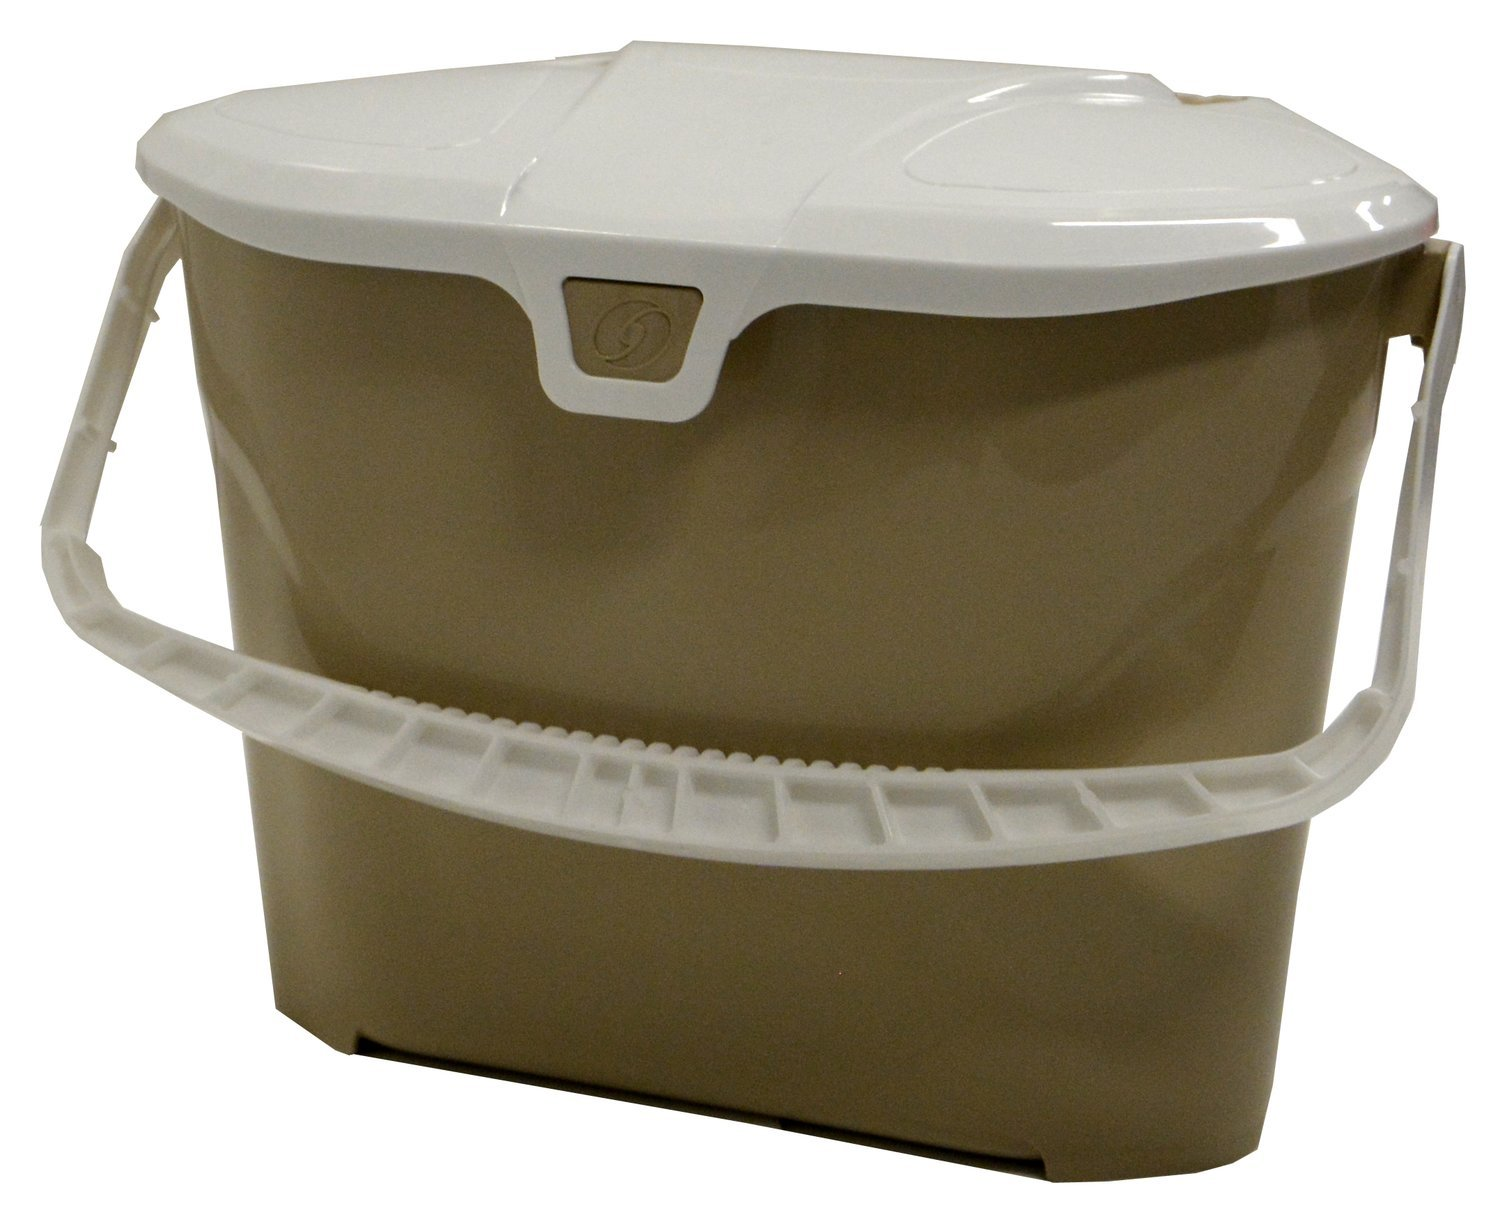 Tan Compost Collection Container